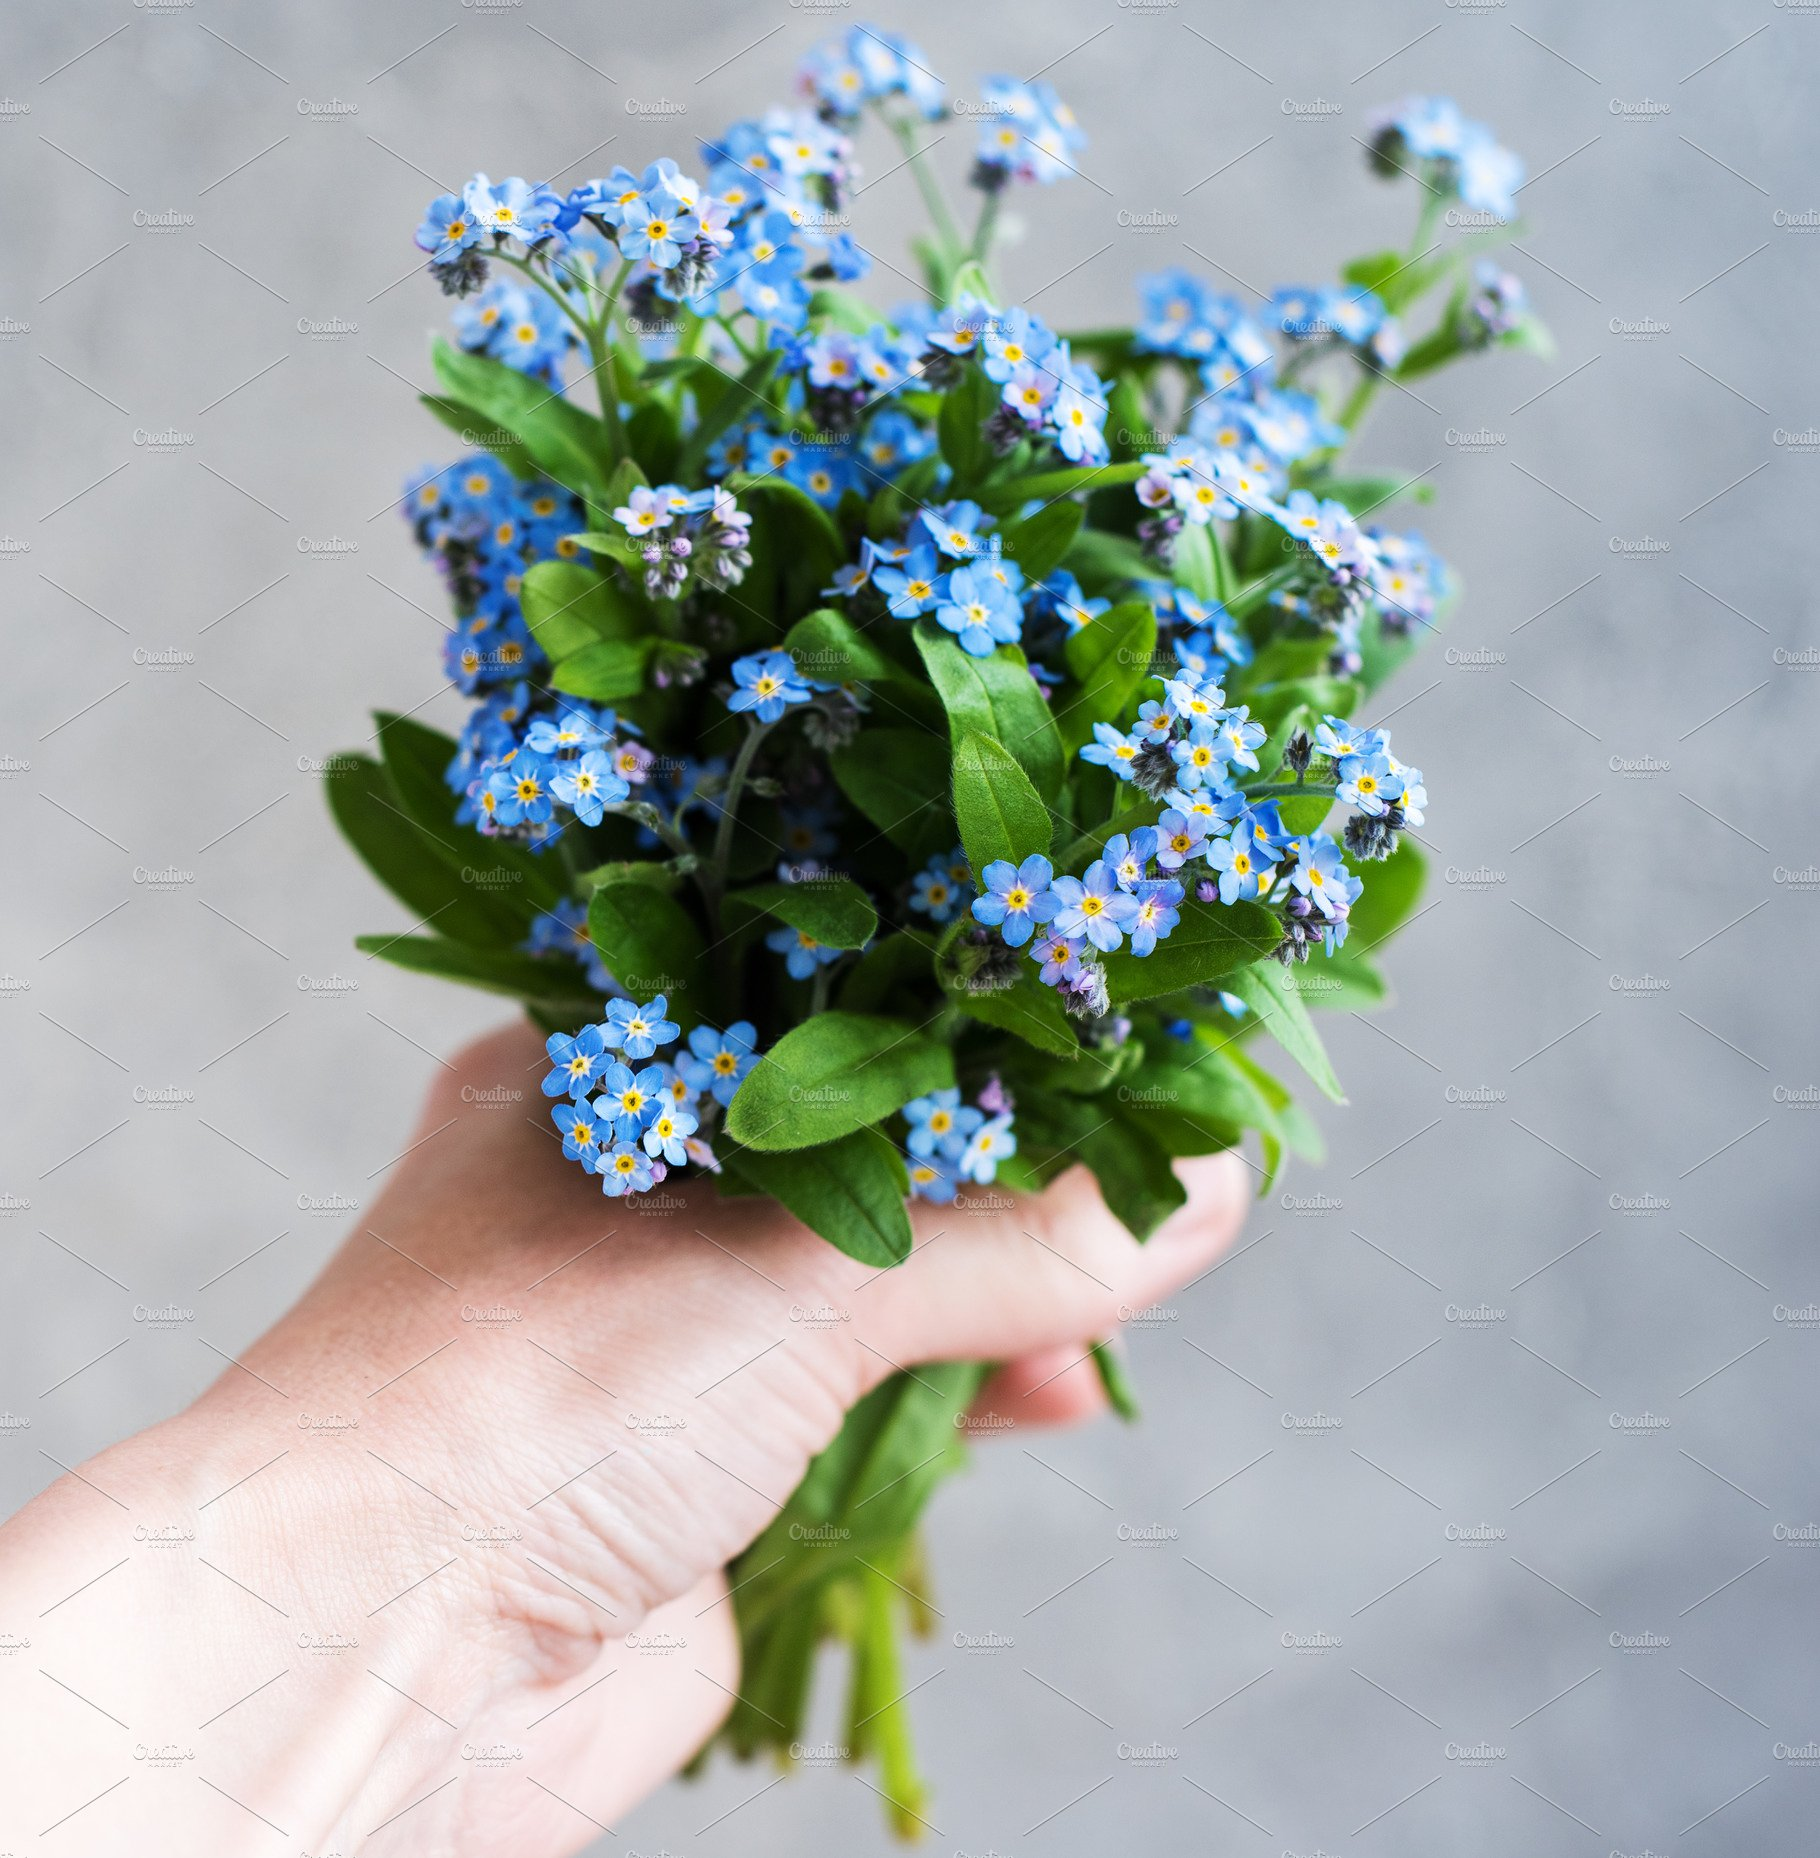 Forget Me Not Flowers In Hand Nature Photos Creative Market